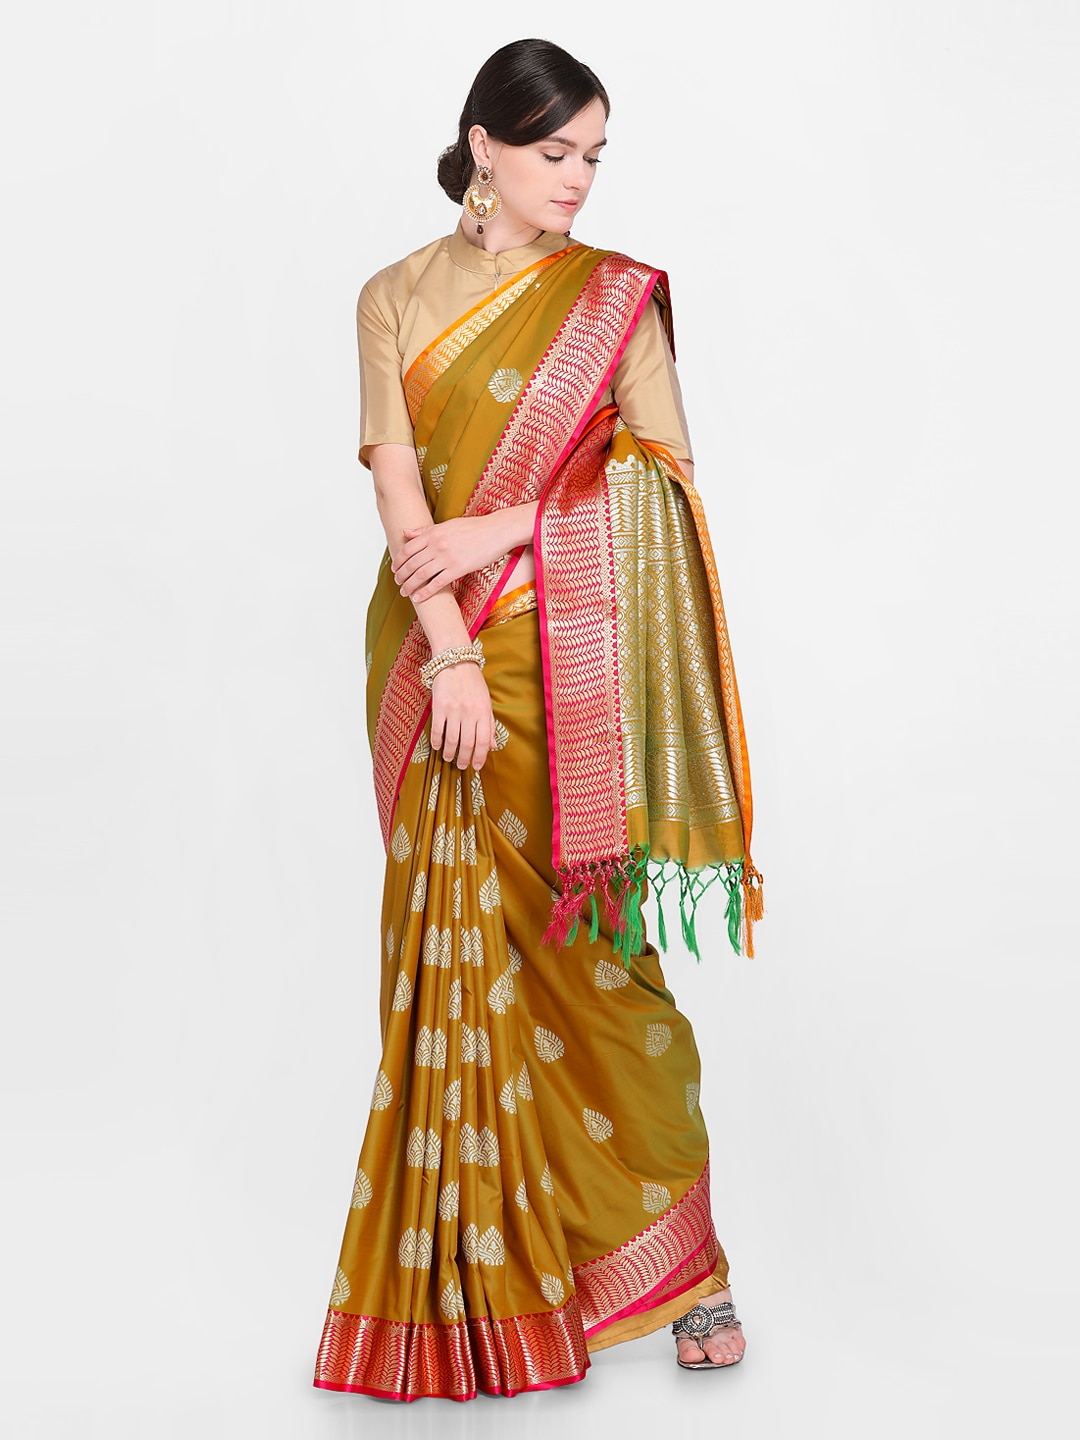 597e59535ec46f Women Sarees Heels - Buy Women Sarees Heels online in India